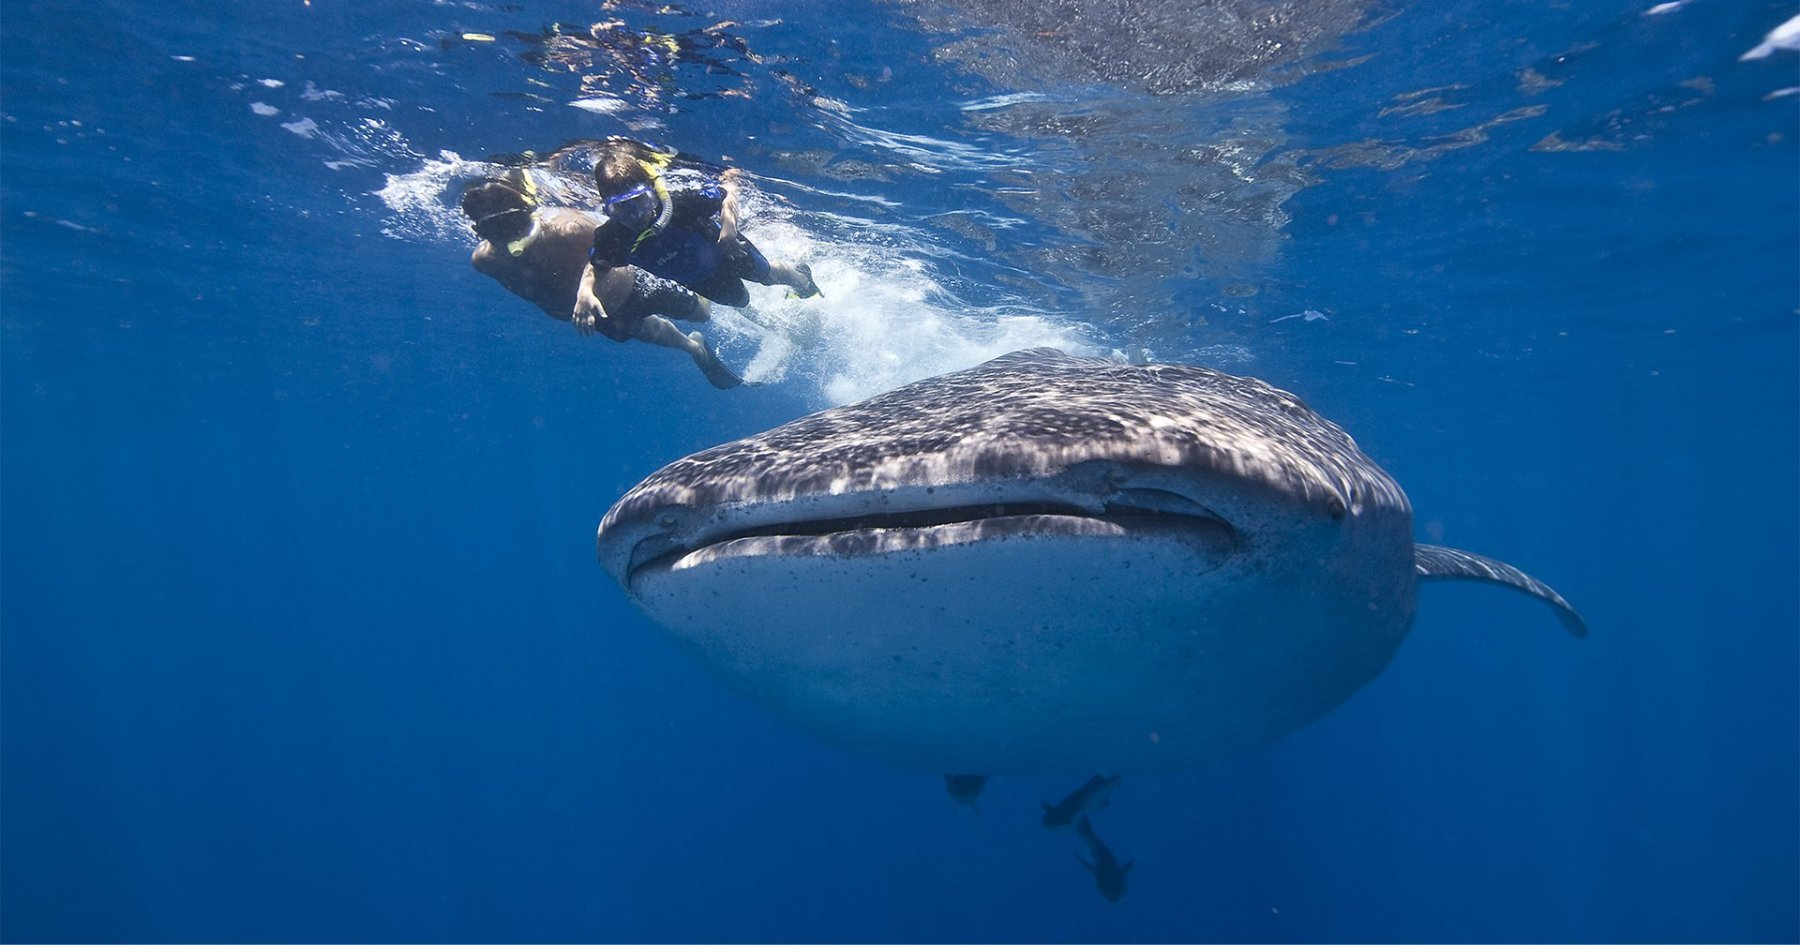 Here's What It's Like to Swim With Whale Sharks